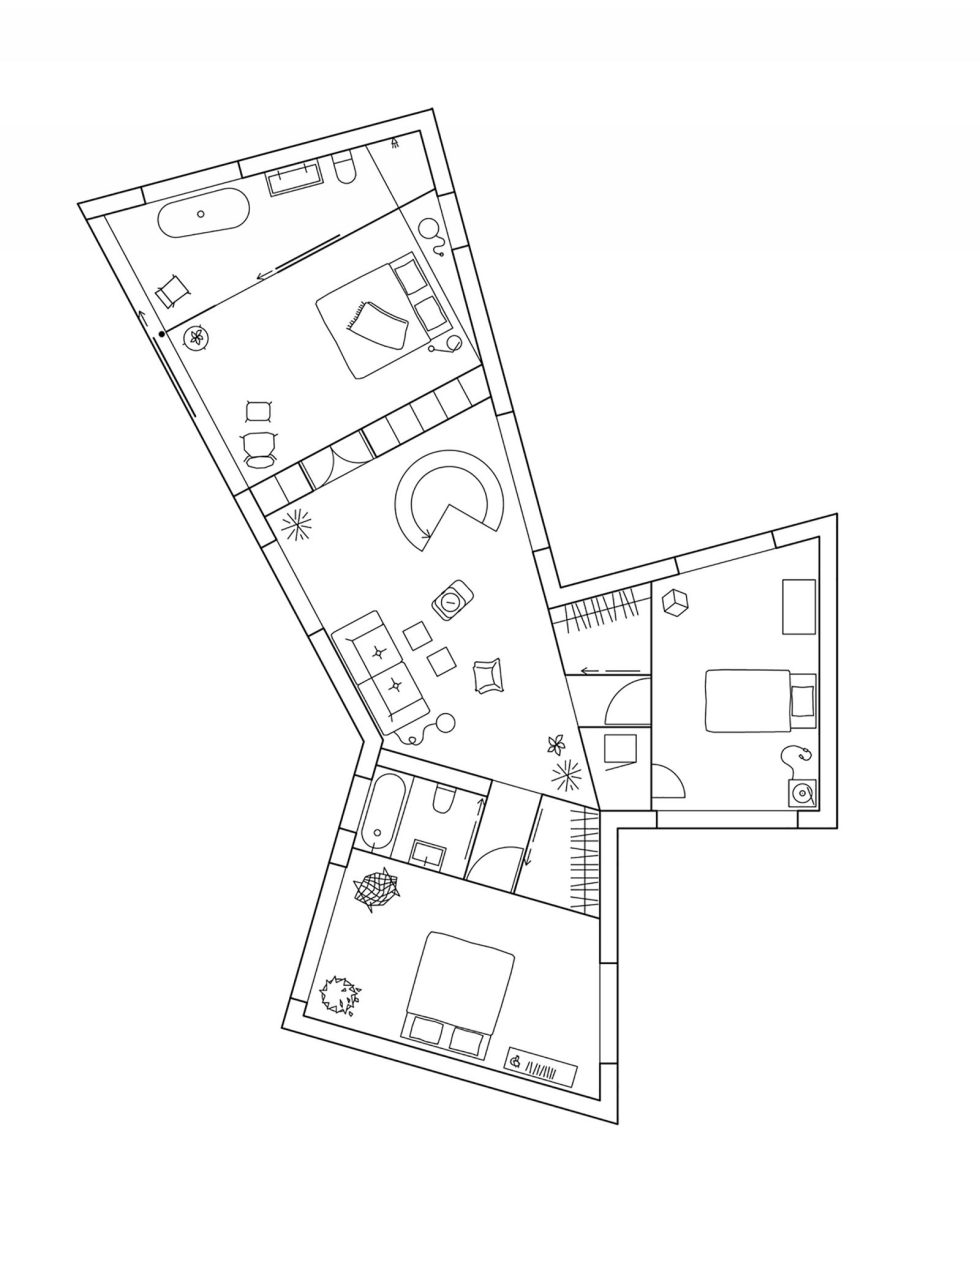 Molle By The Sea House From Elding Oscarson In Sweden - Second Floor Plan